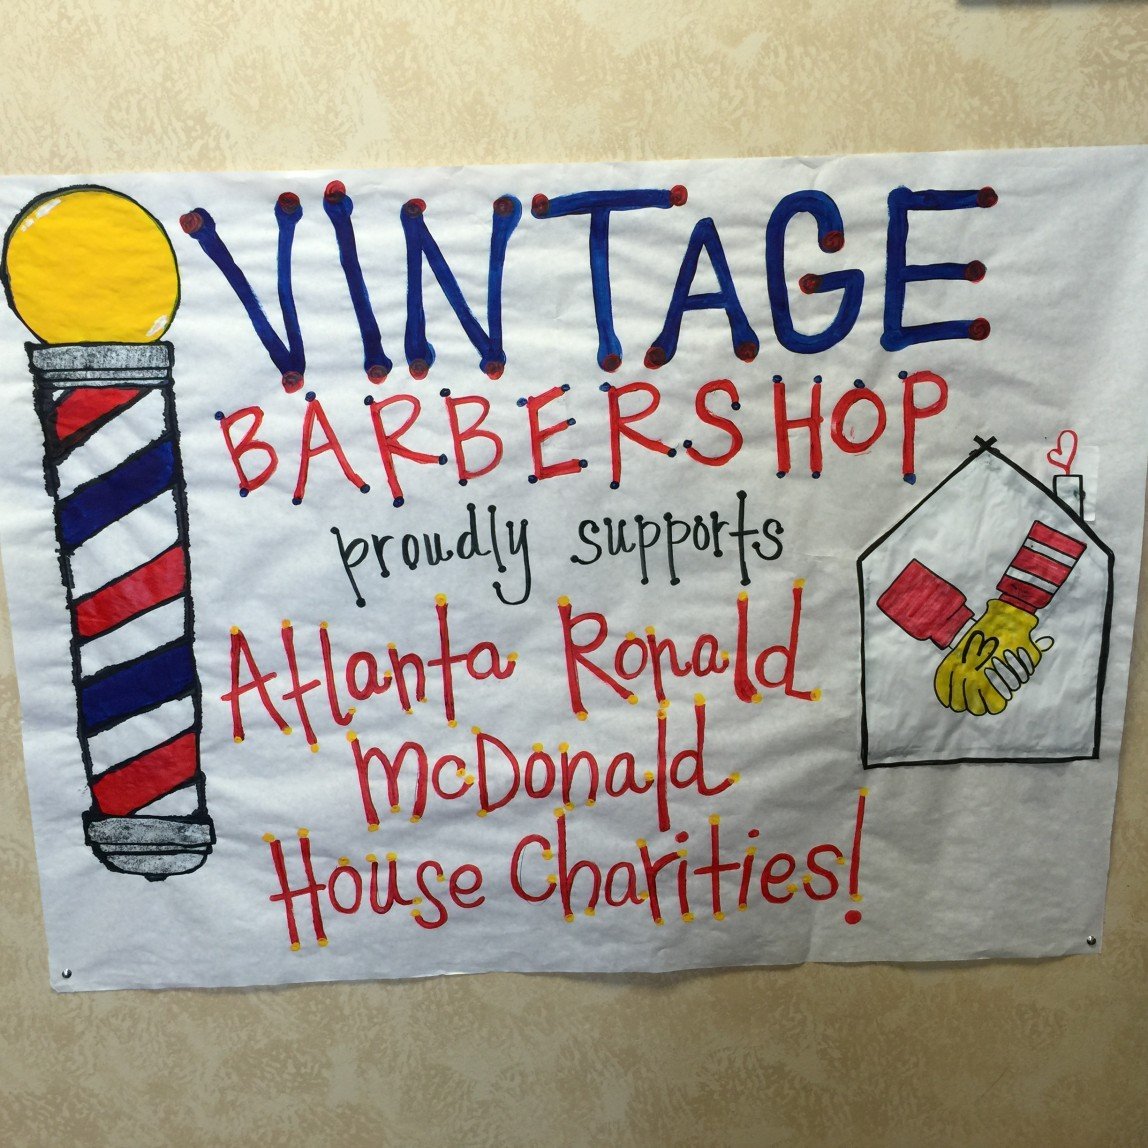 2015 Vintage Barbershop Gives to Atlanta's Ronald McDonald House